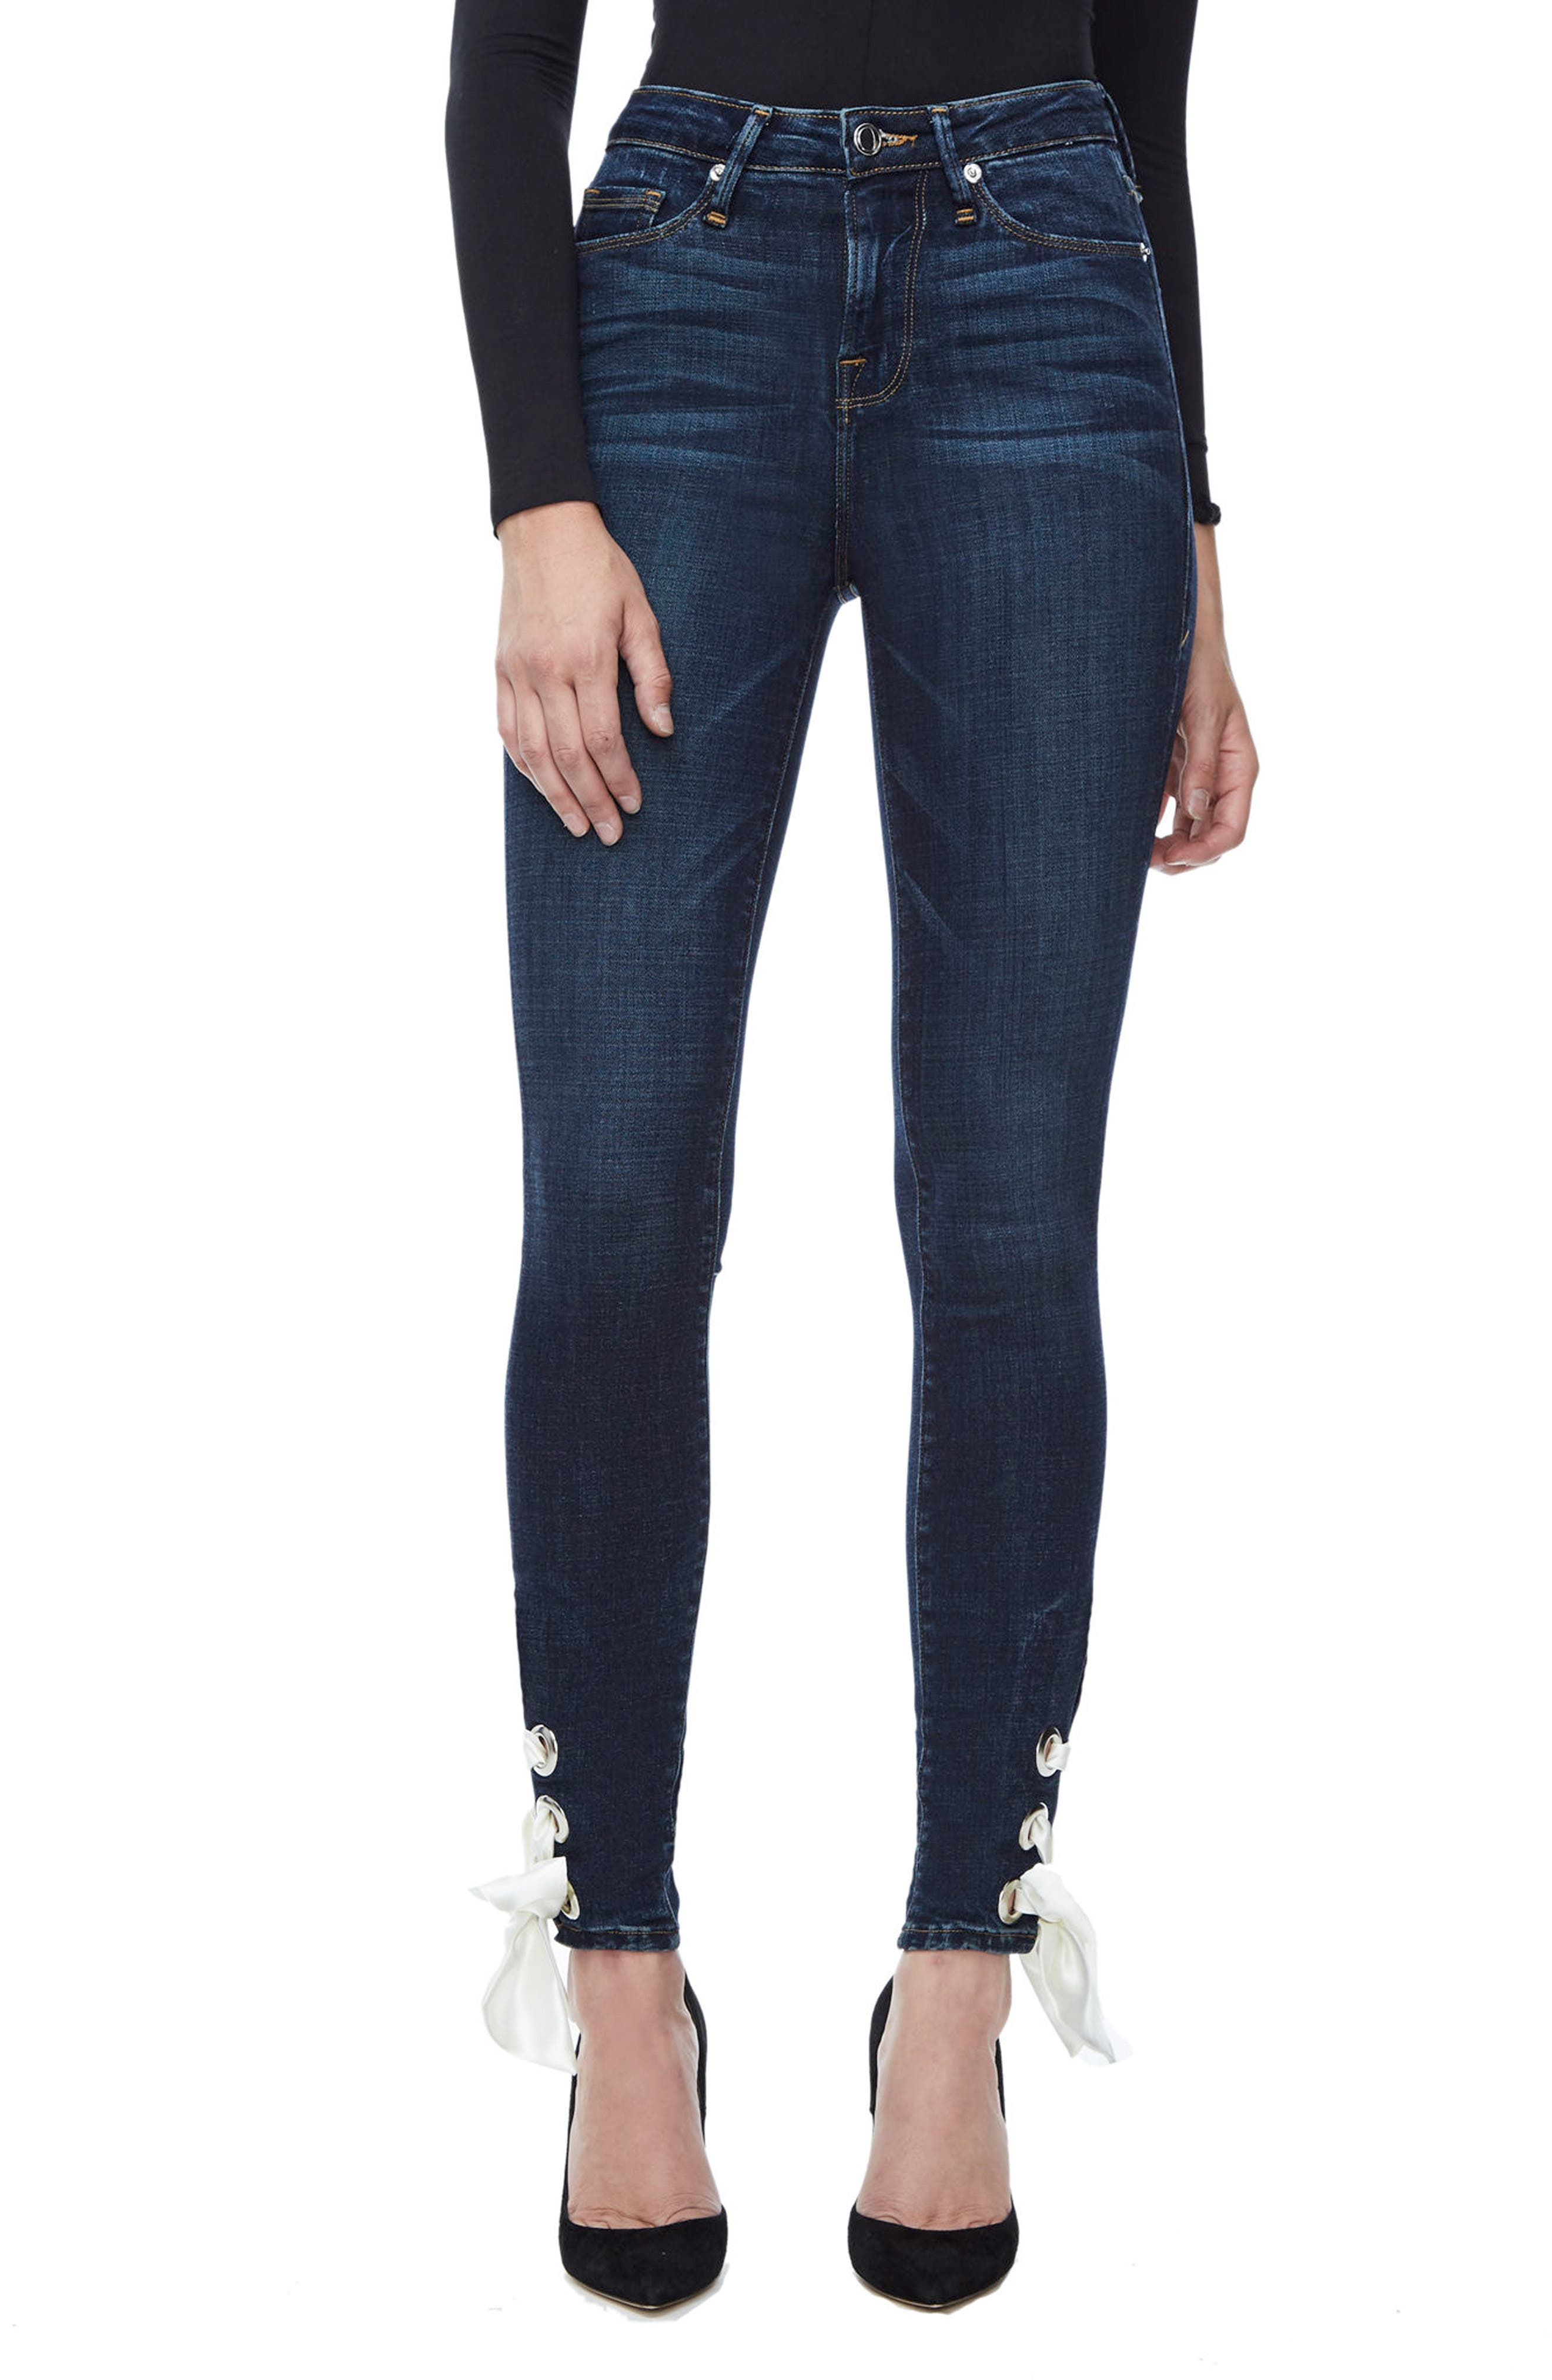 Main Image - Good American Good Waist Ultra High Waist Ankle Skinny Jeans (Blue 102) (Regular & Plus Size)